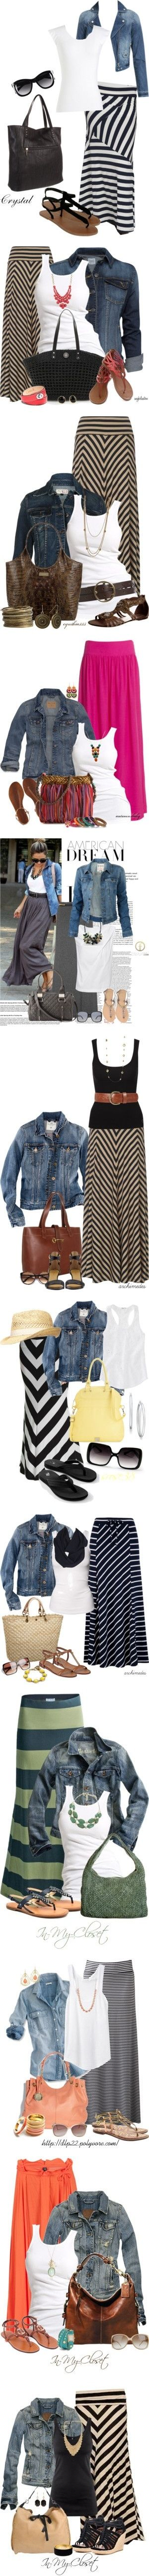 chevron skirt combos by sharonsparkles